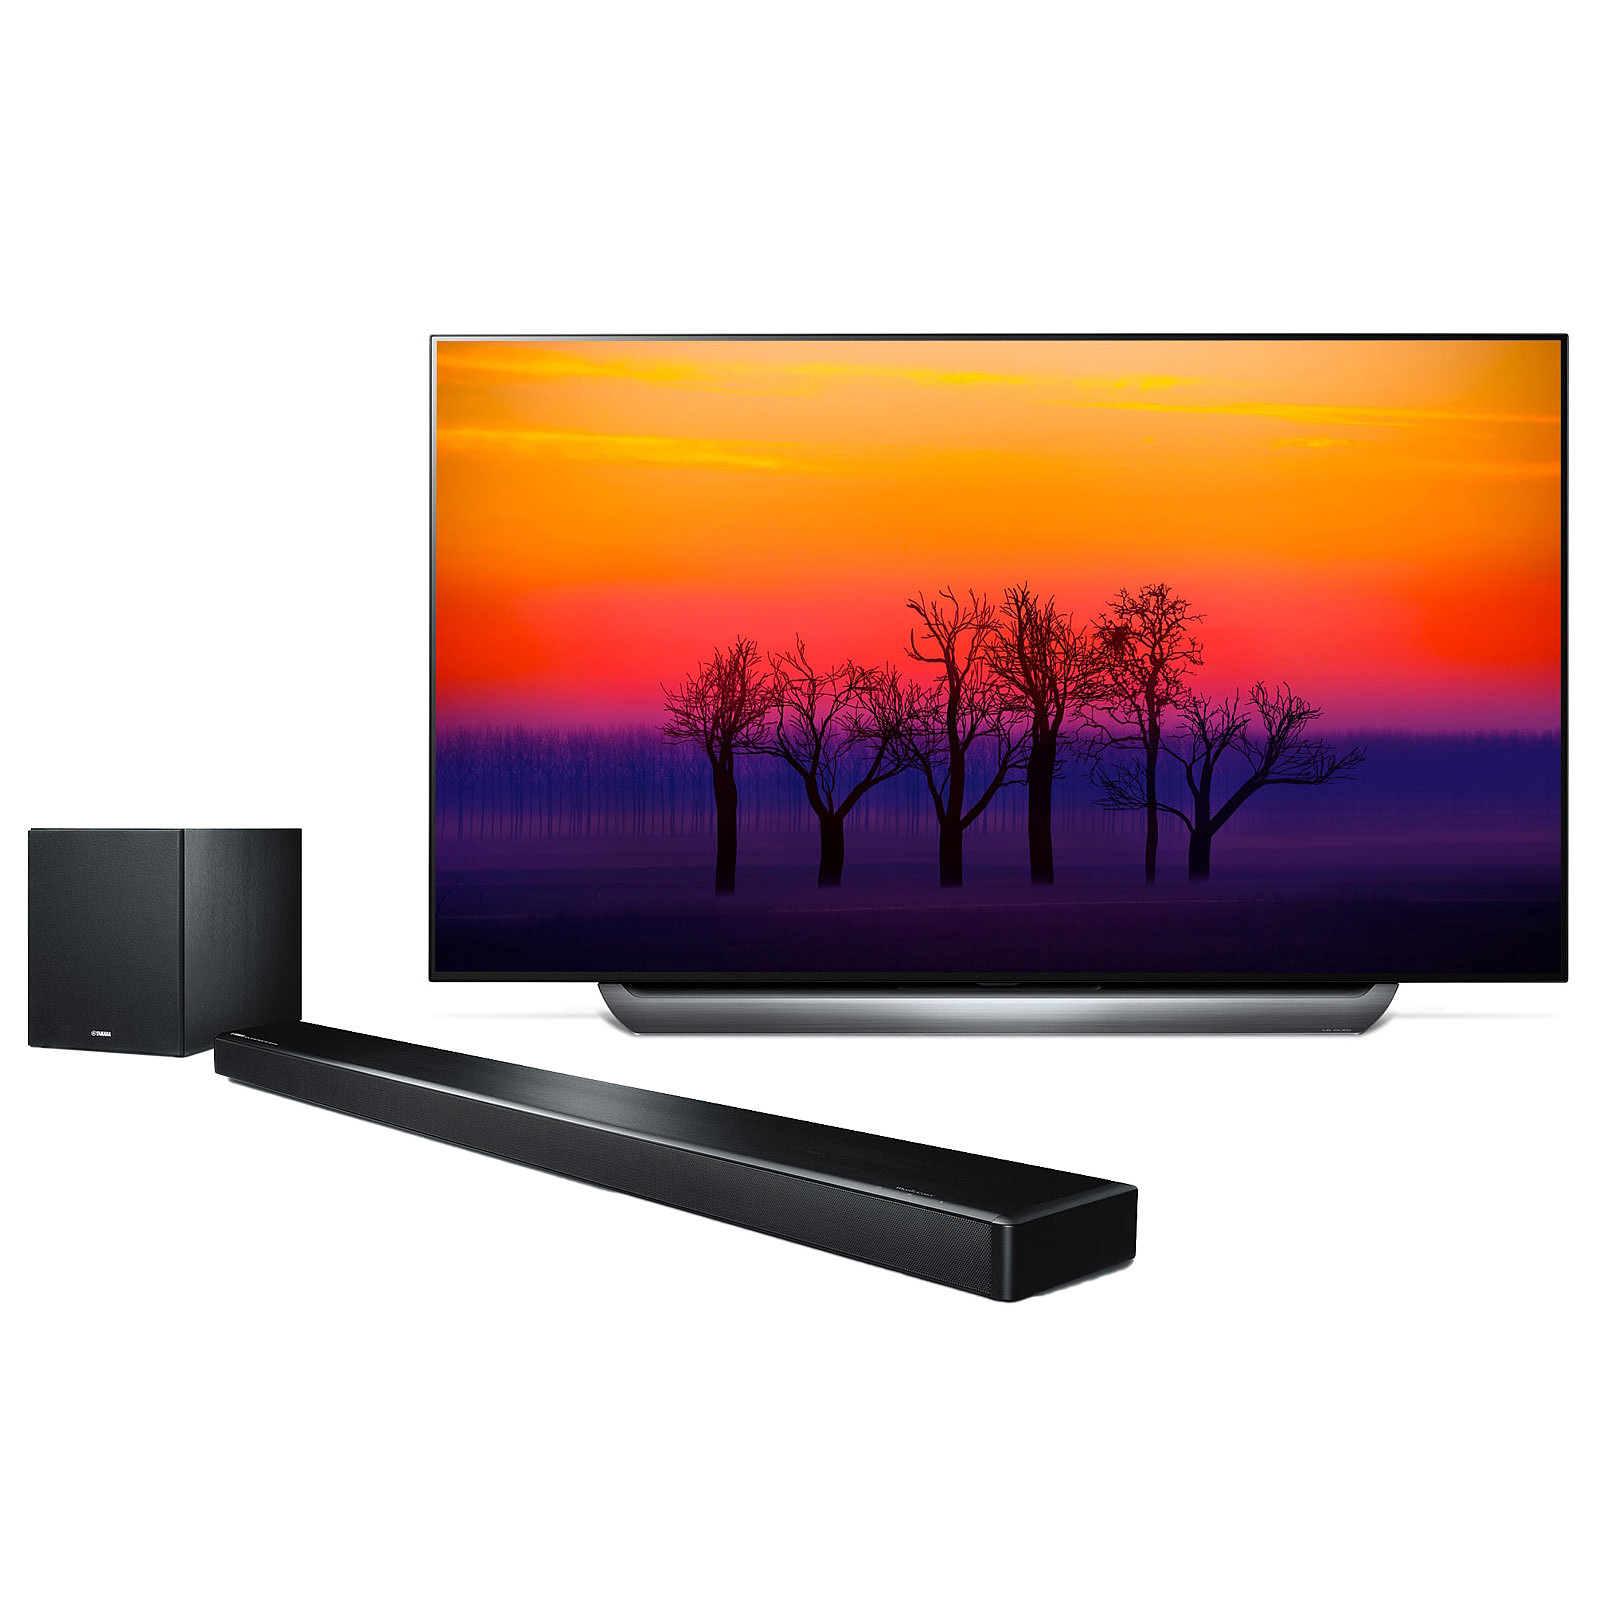 lg oled55c8 yamaha musiccast ysp 2700 noir tv lg sur. Black Bedroom Furniture Sets. Home Design Ideas